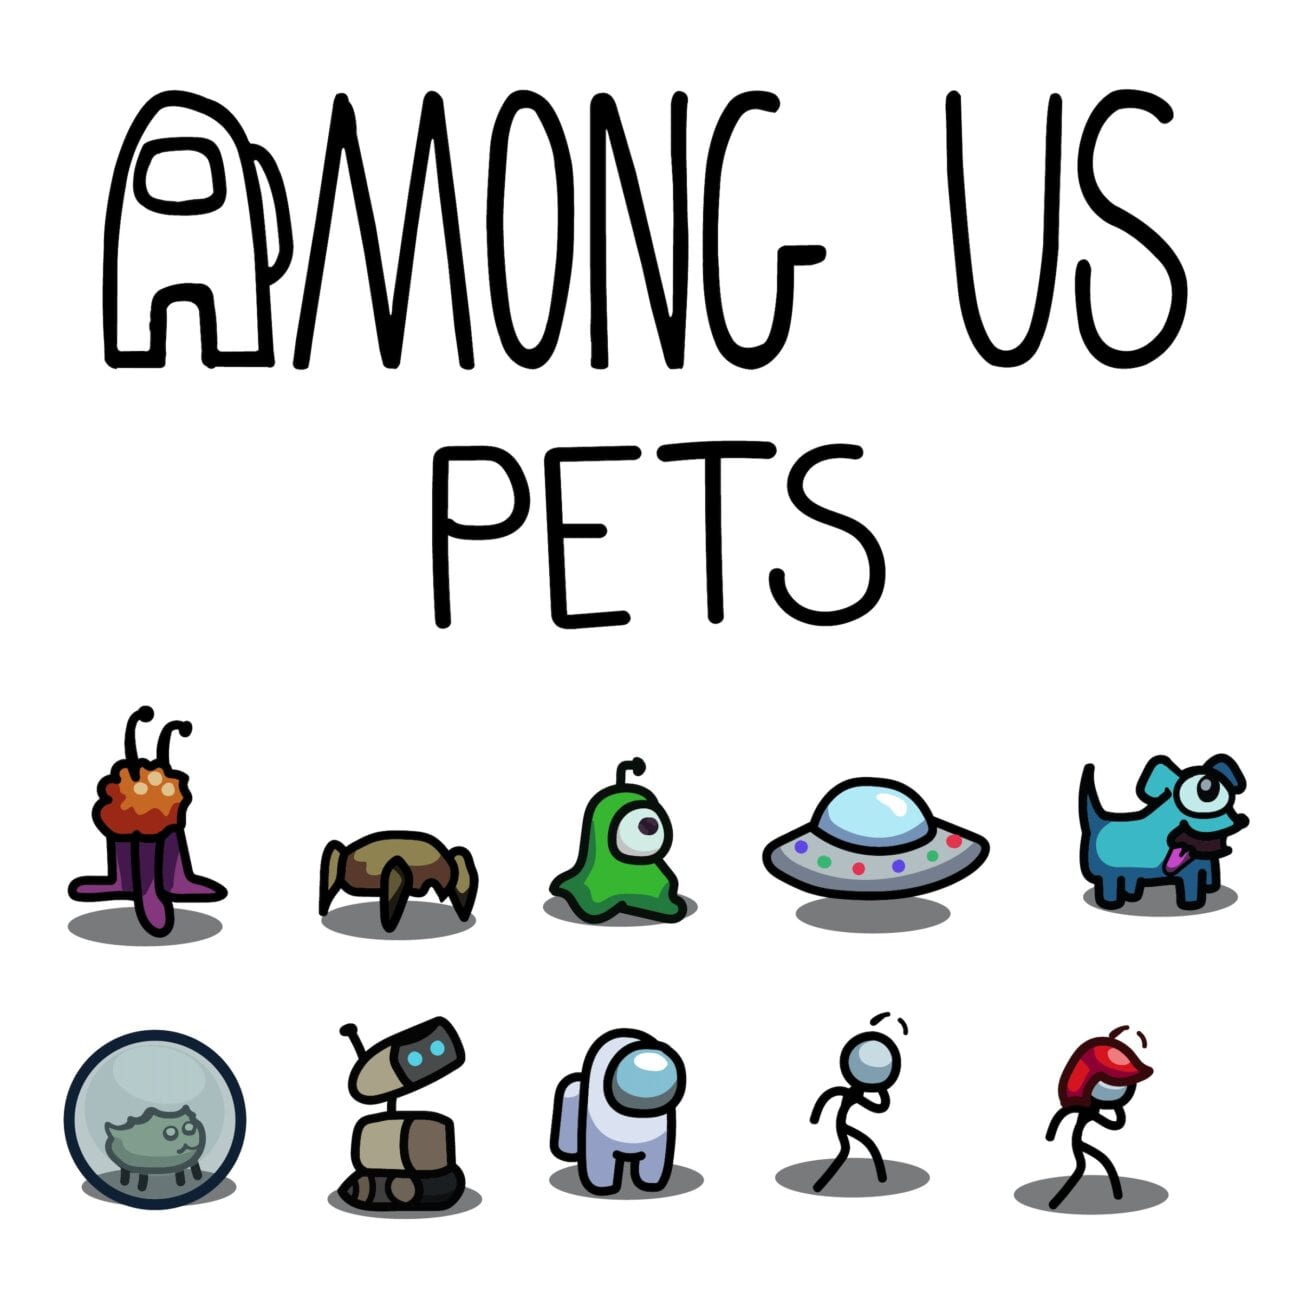 Don't miss out on getting the free 'Among Us' pet from Twitch! Now you can have the Twitch Glitch follow you around.